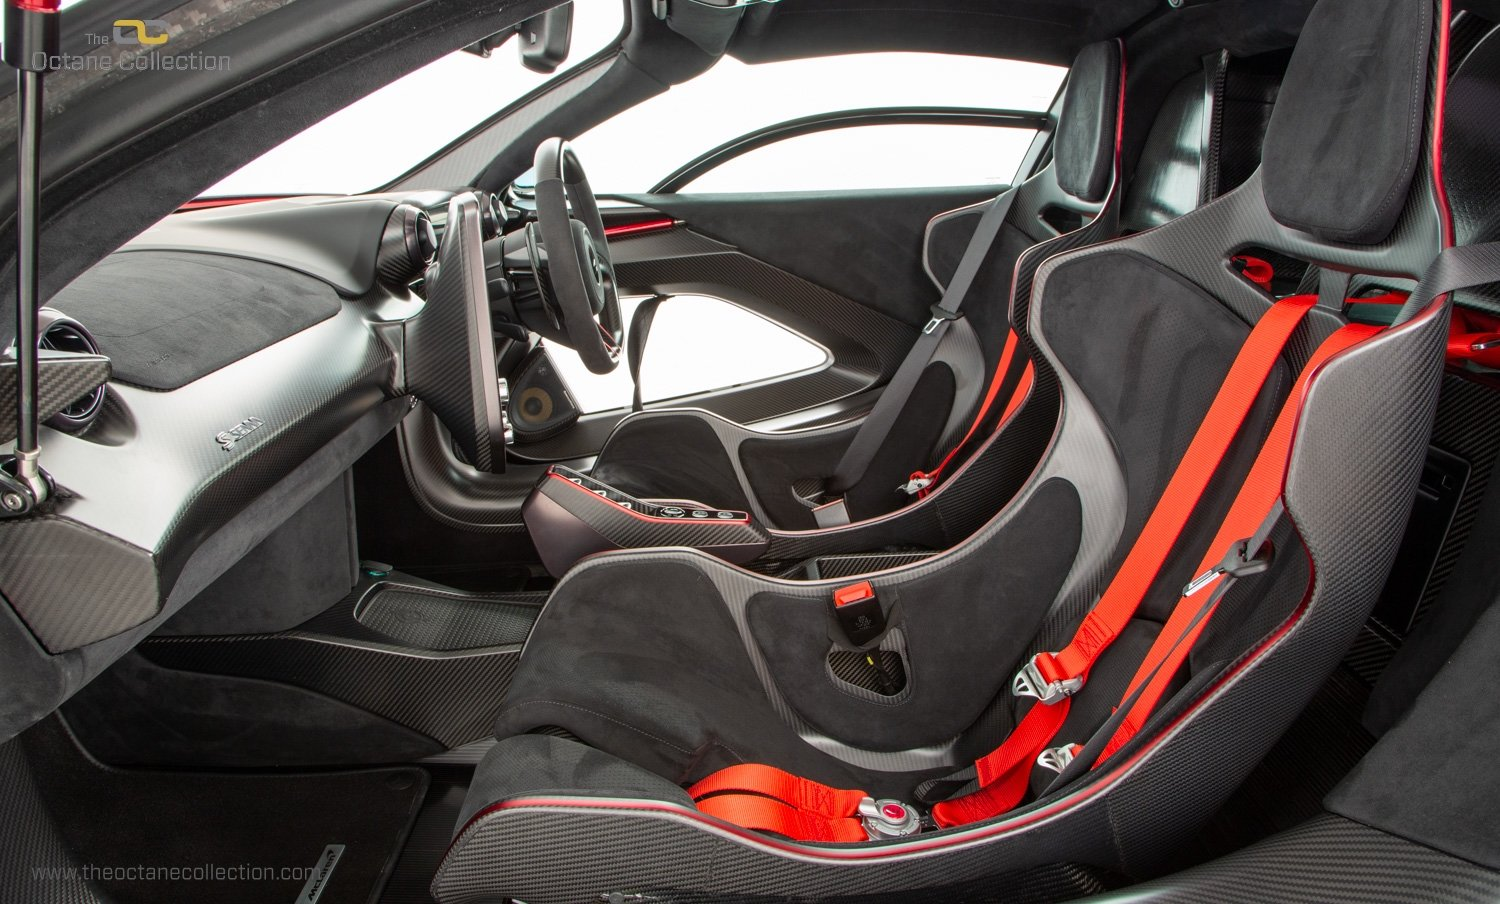 2019 MCLAREN SENNA // 1 OF 1 NERELLO RED // £115K+ MSO OPTIONS For Sale (picture 19 of 27)